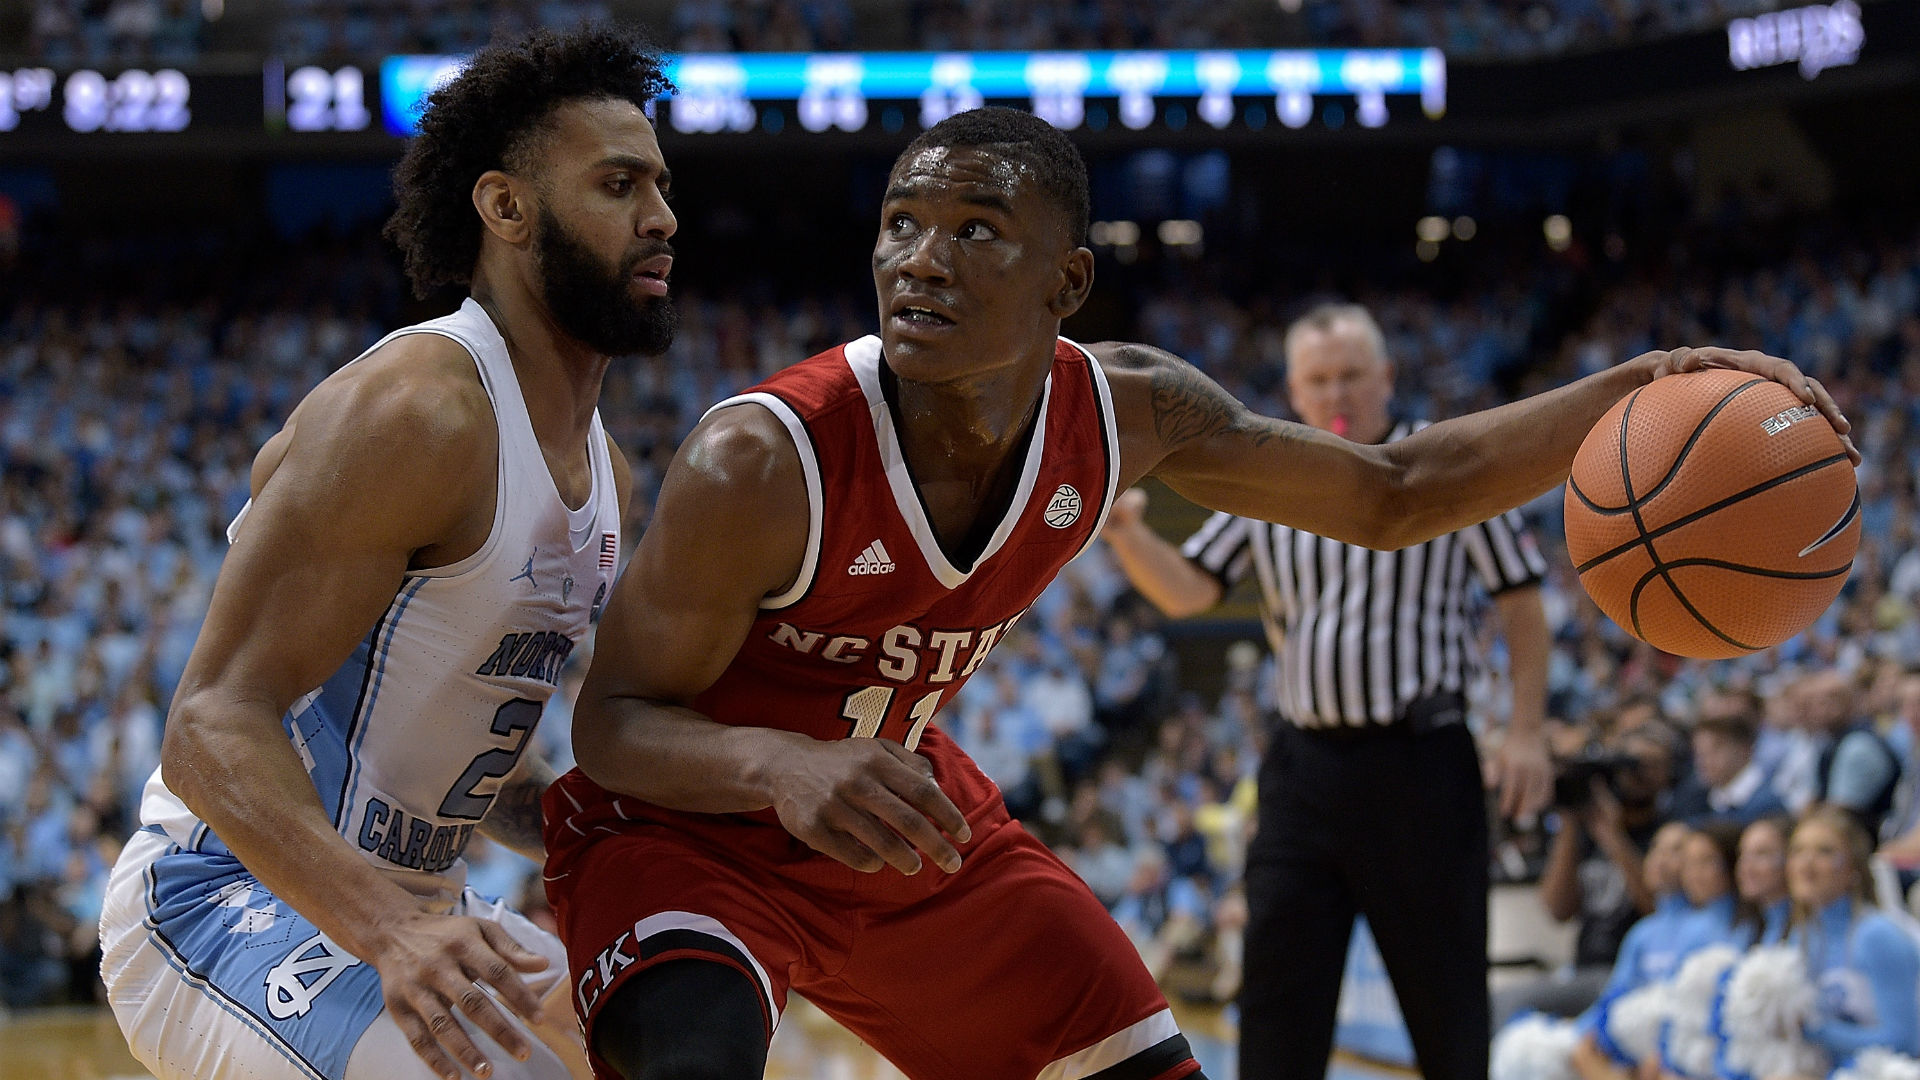 UNC Takes Shot at NC State before Showdown with Duke